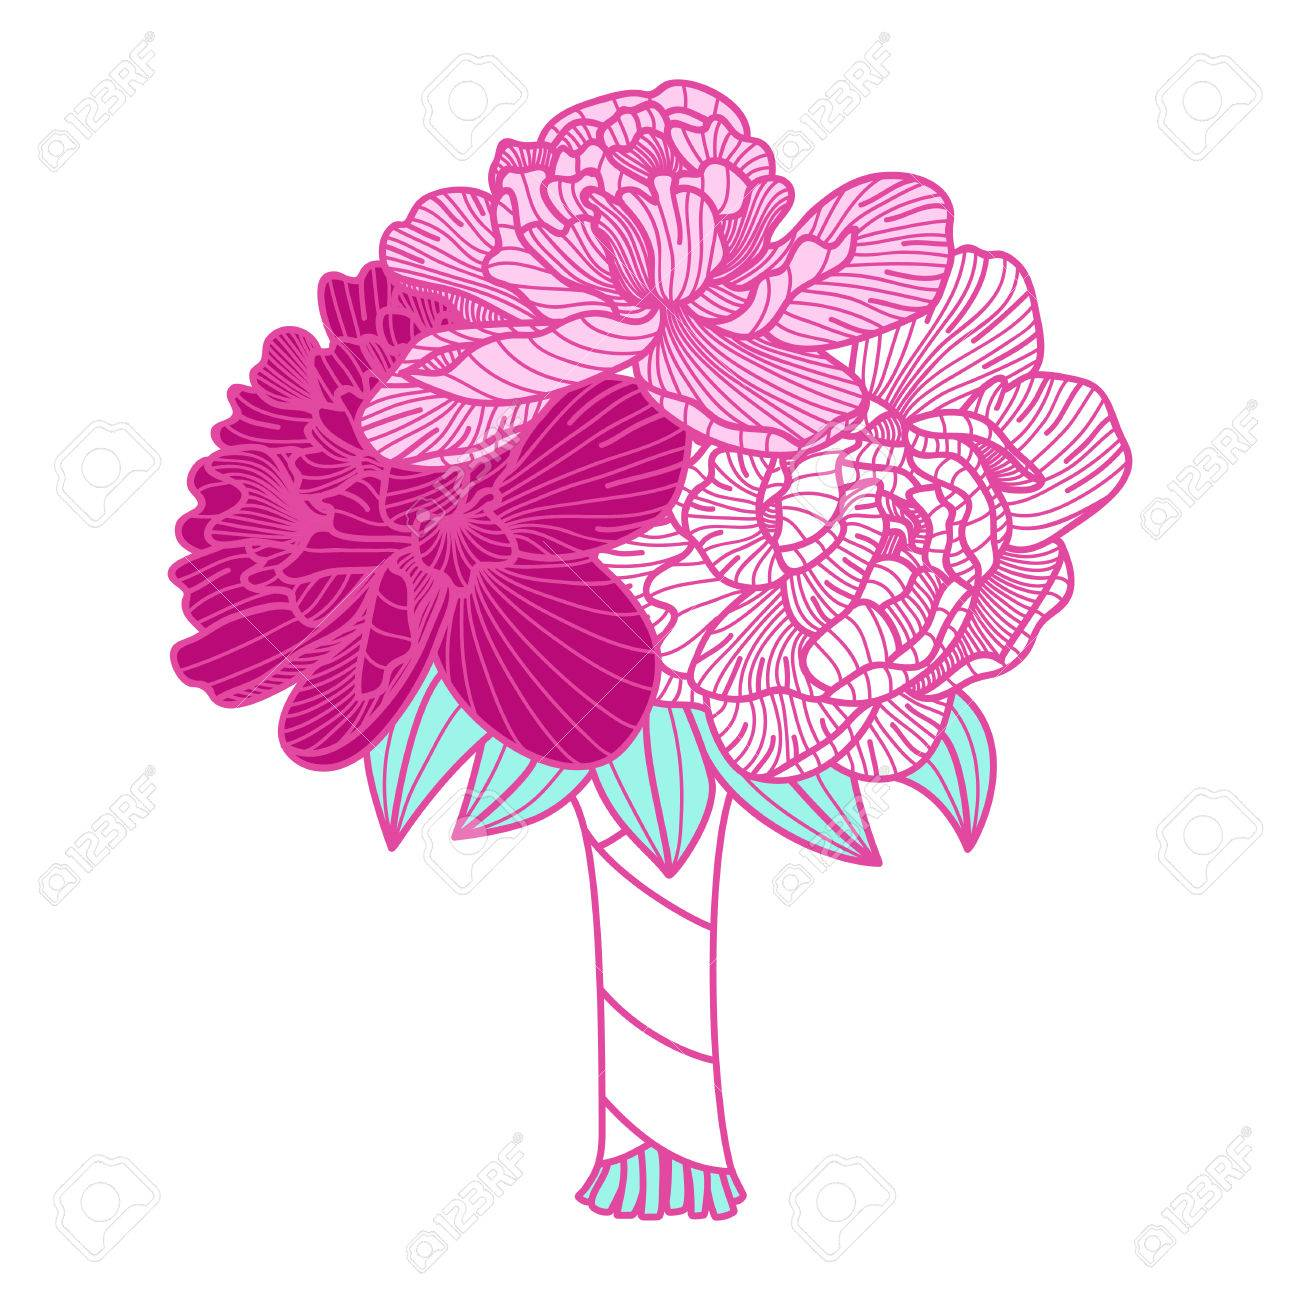 1300x1300 Wedding Bouquet Illustration Made Of Peonies Royalty Free Cliparts